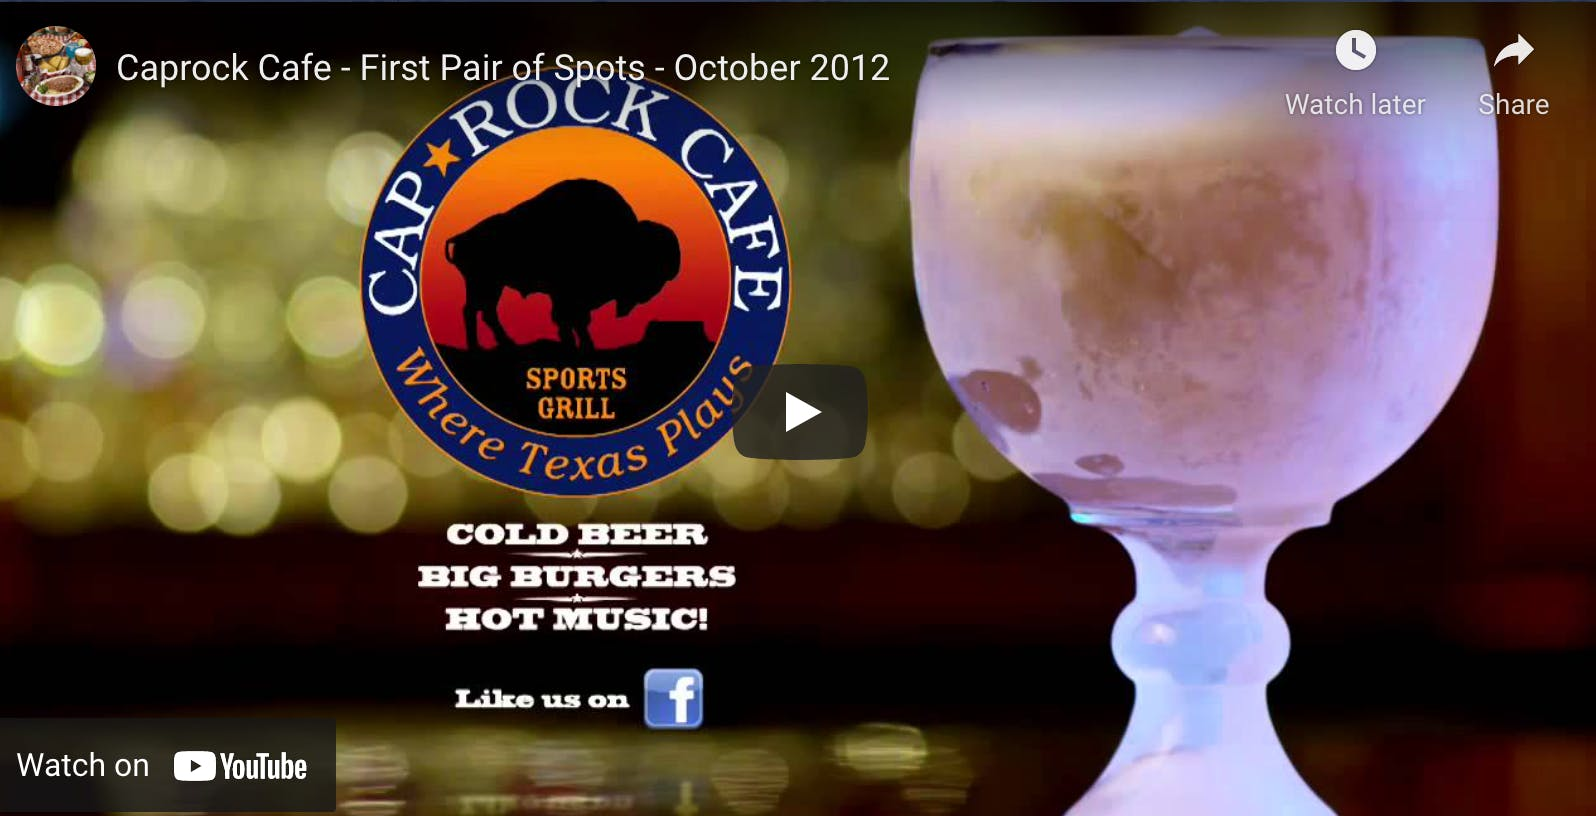 Caprock Cafe - First Pair of Spots - October 2012